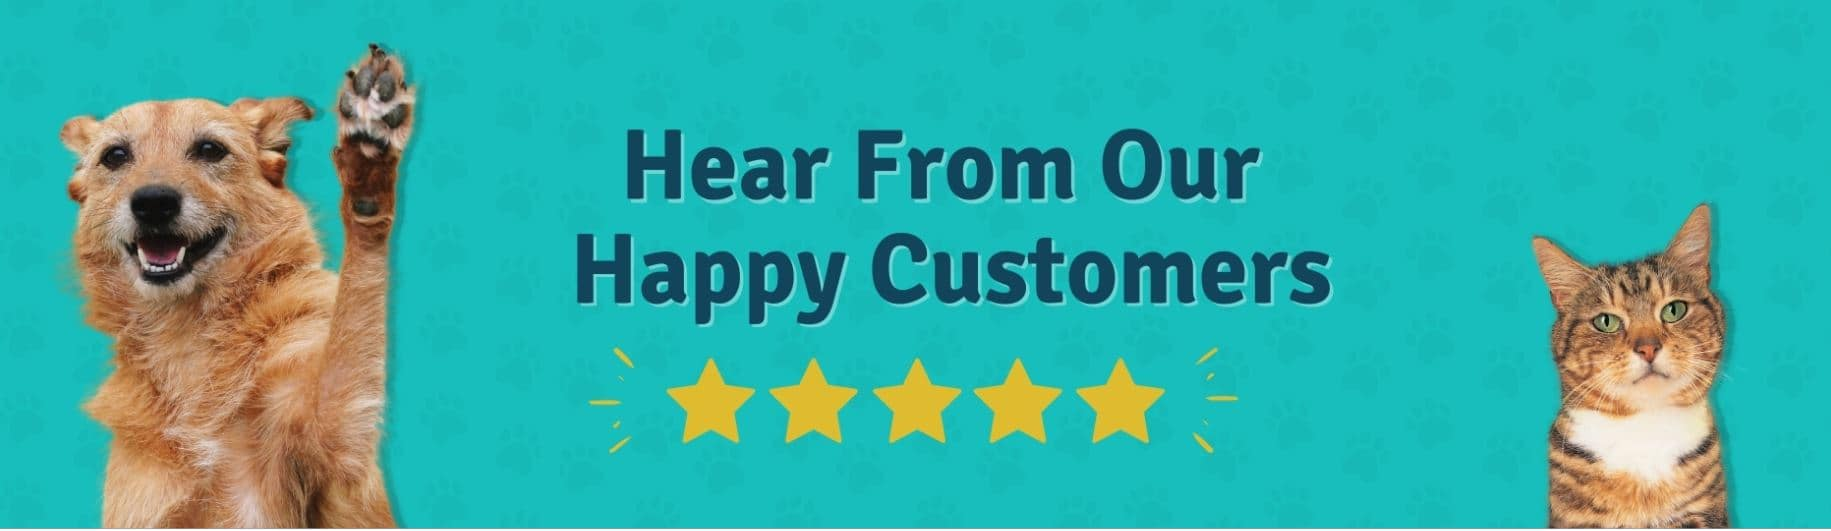 Prudent Pet recieves many positive reviews from happy customers